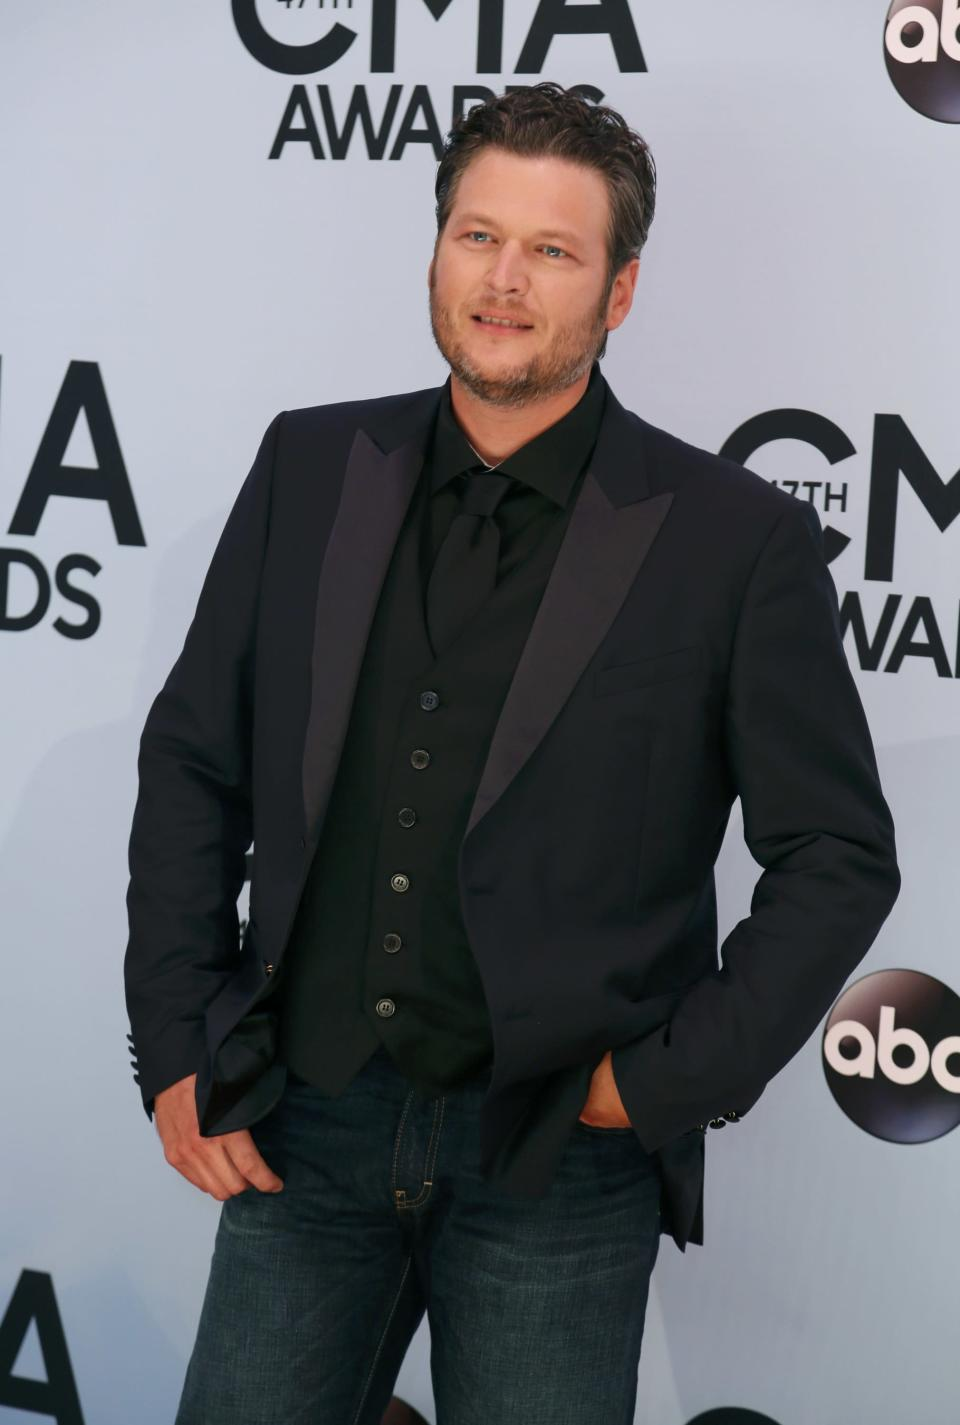 Singer Blake Shelton arrives at the 47th Country Music Association Awards in Nashville, Tennessee November 6, 2013. REUTERS/Eric Henderson (UNITED STATES - Tags: ENTERTAINMENT)